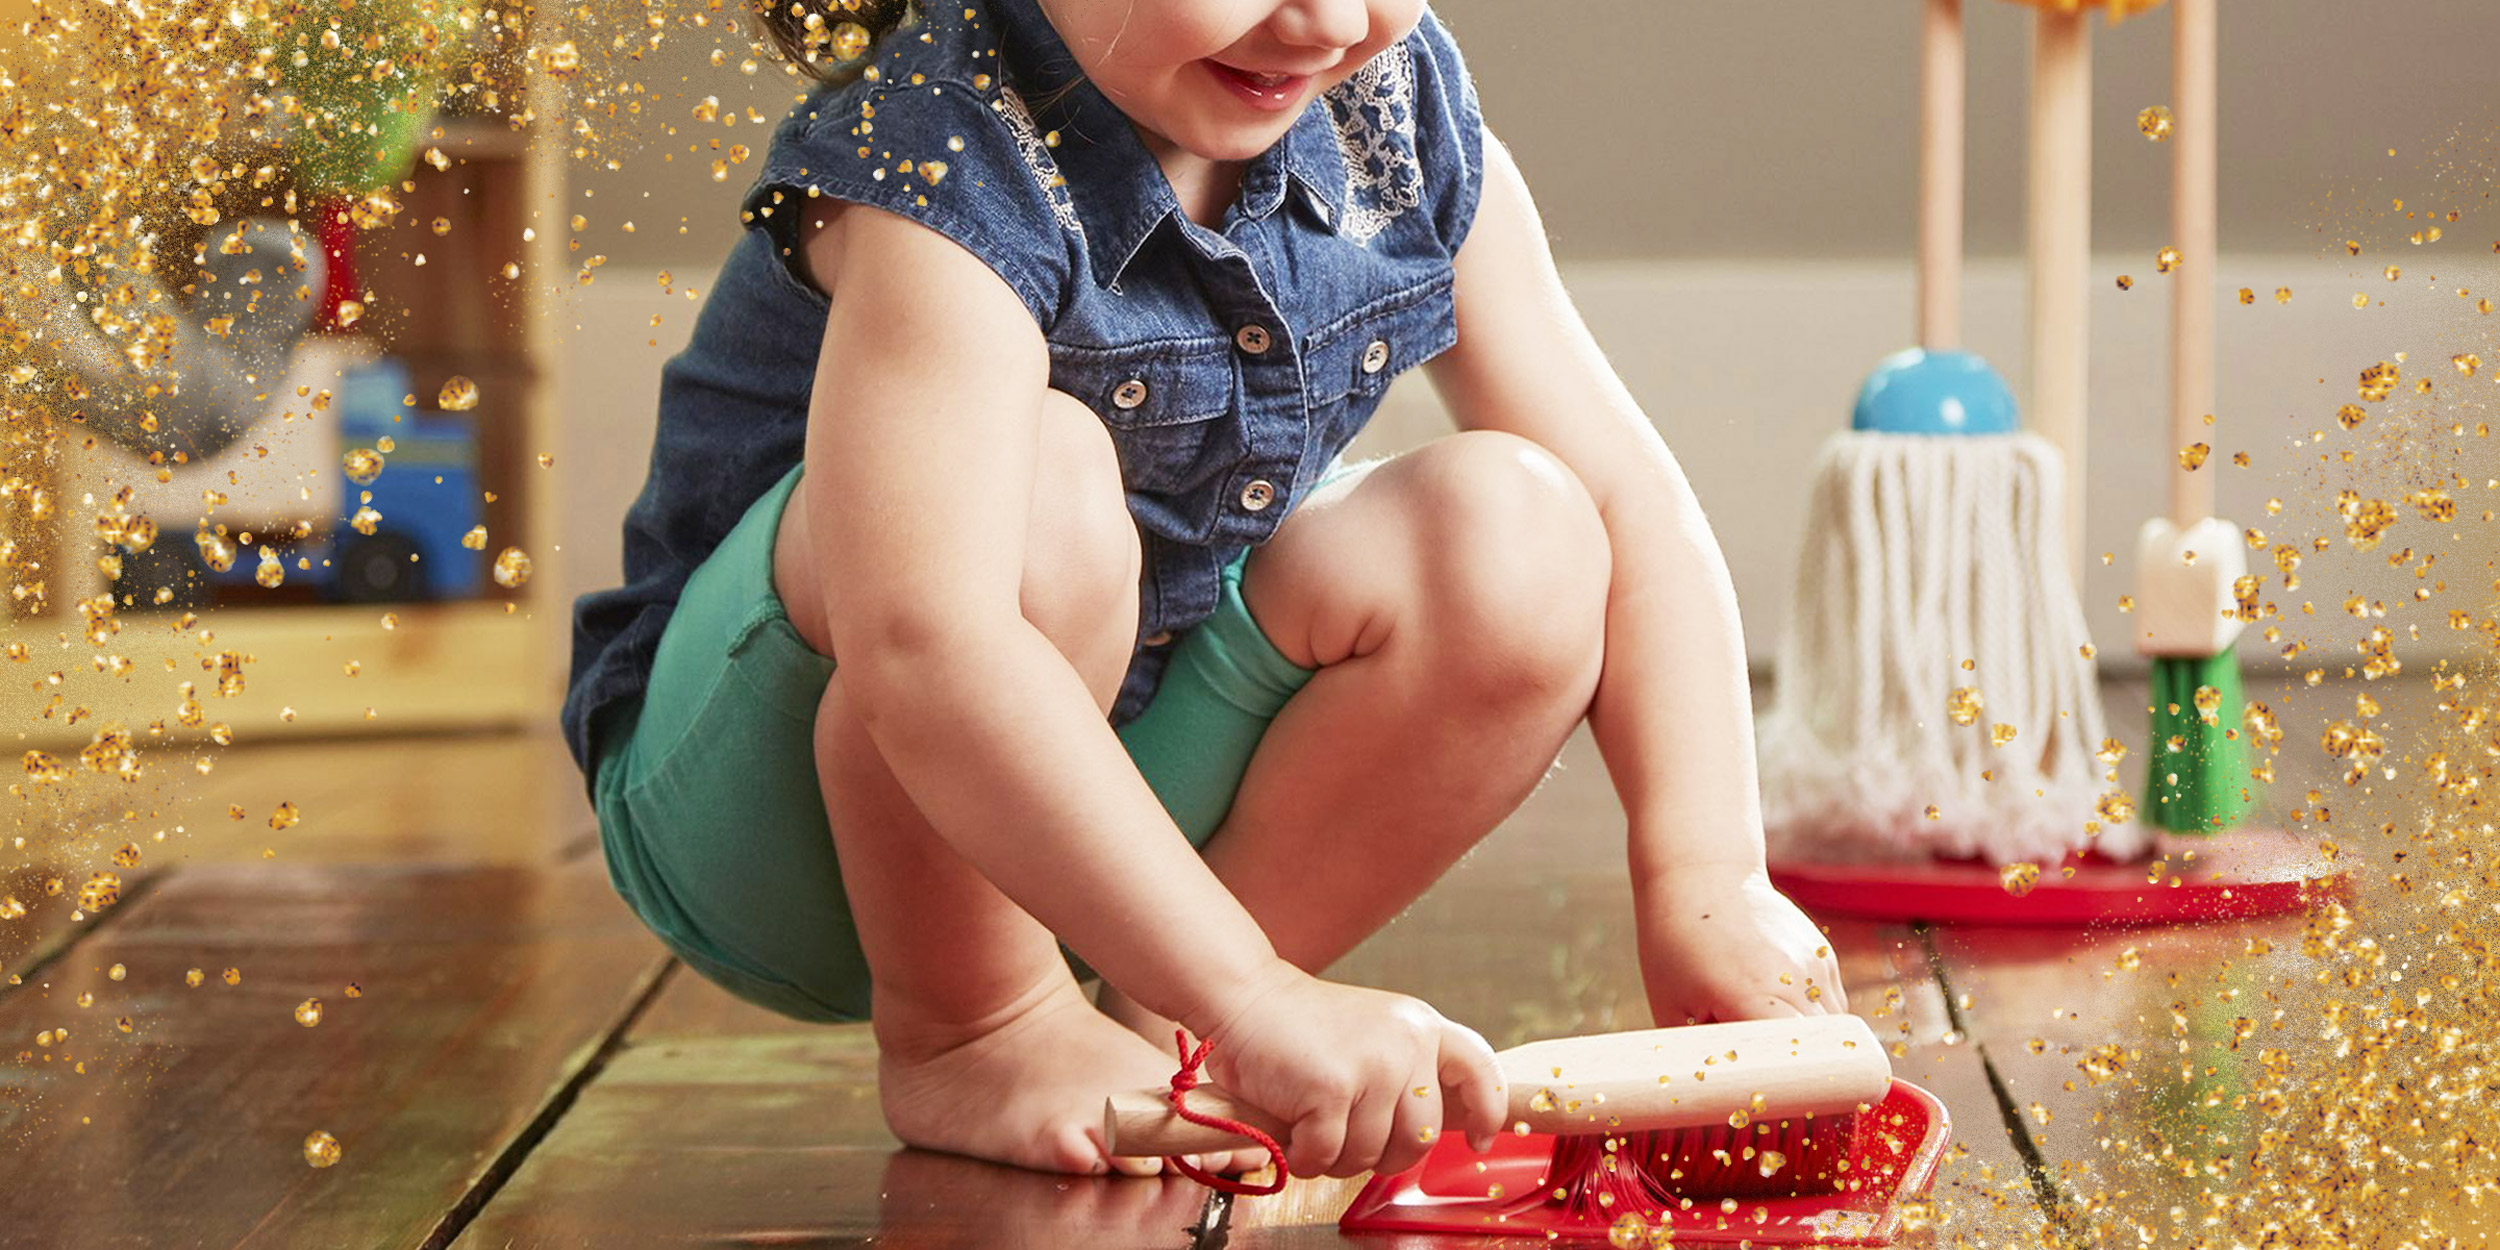 Best Toys For A 2 Year Old For Christmas 2021